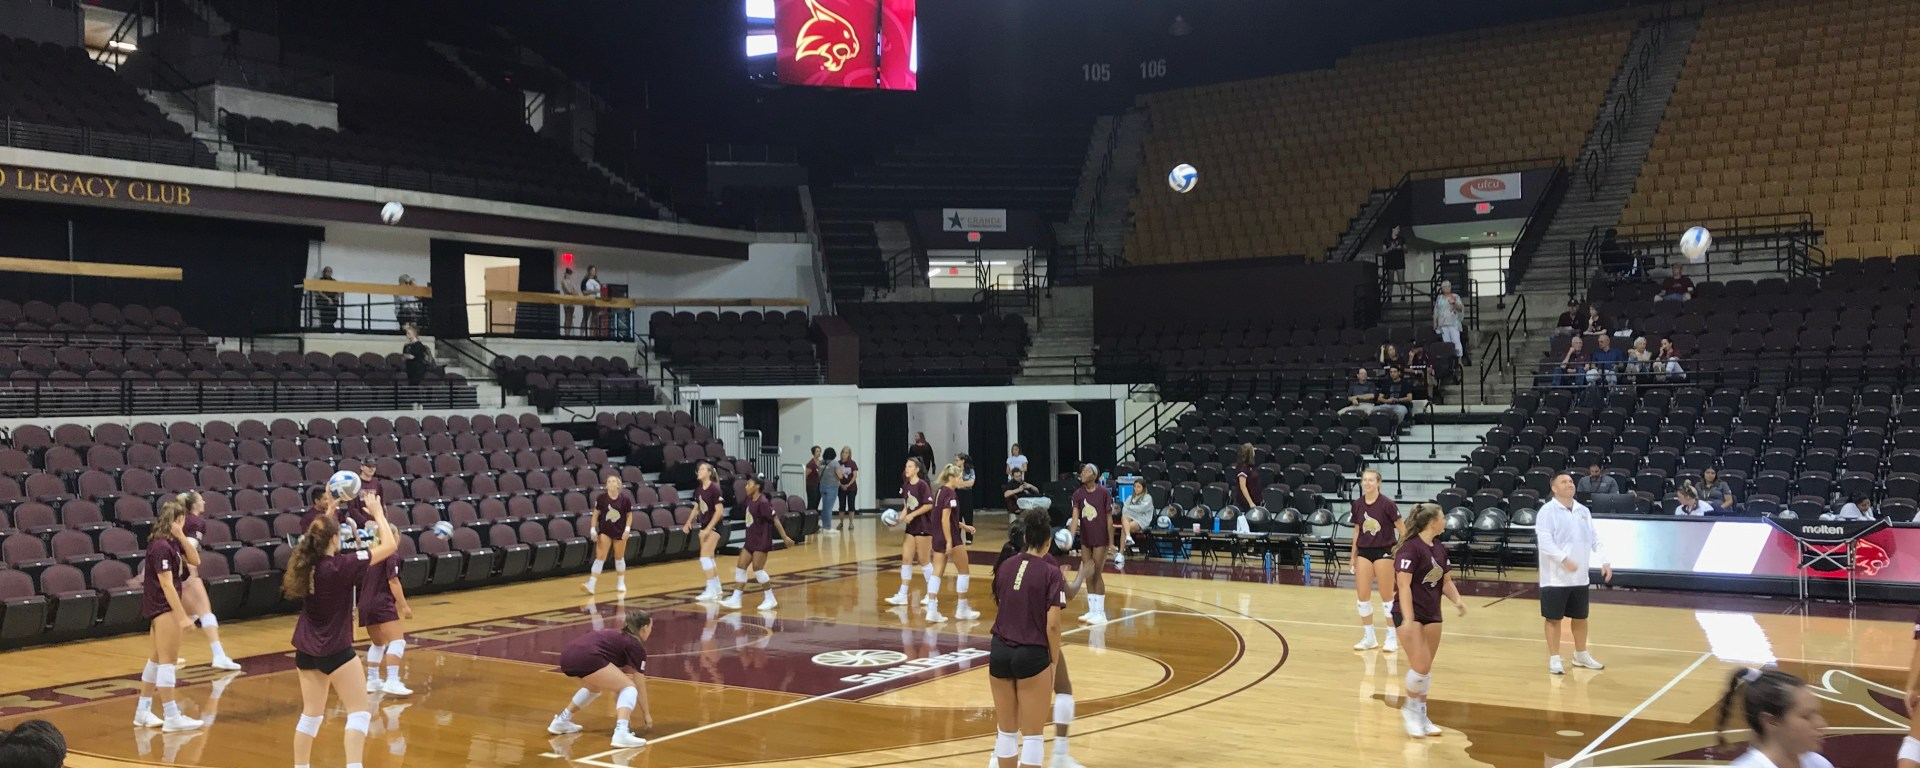 5 or so Bobcats are are standing on opposite sides of their side of the court warming up with volleyballs before the game starts.